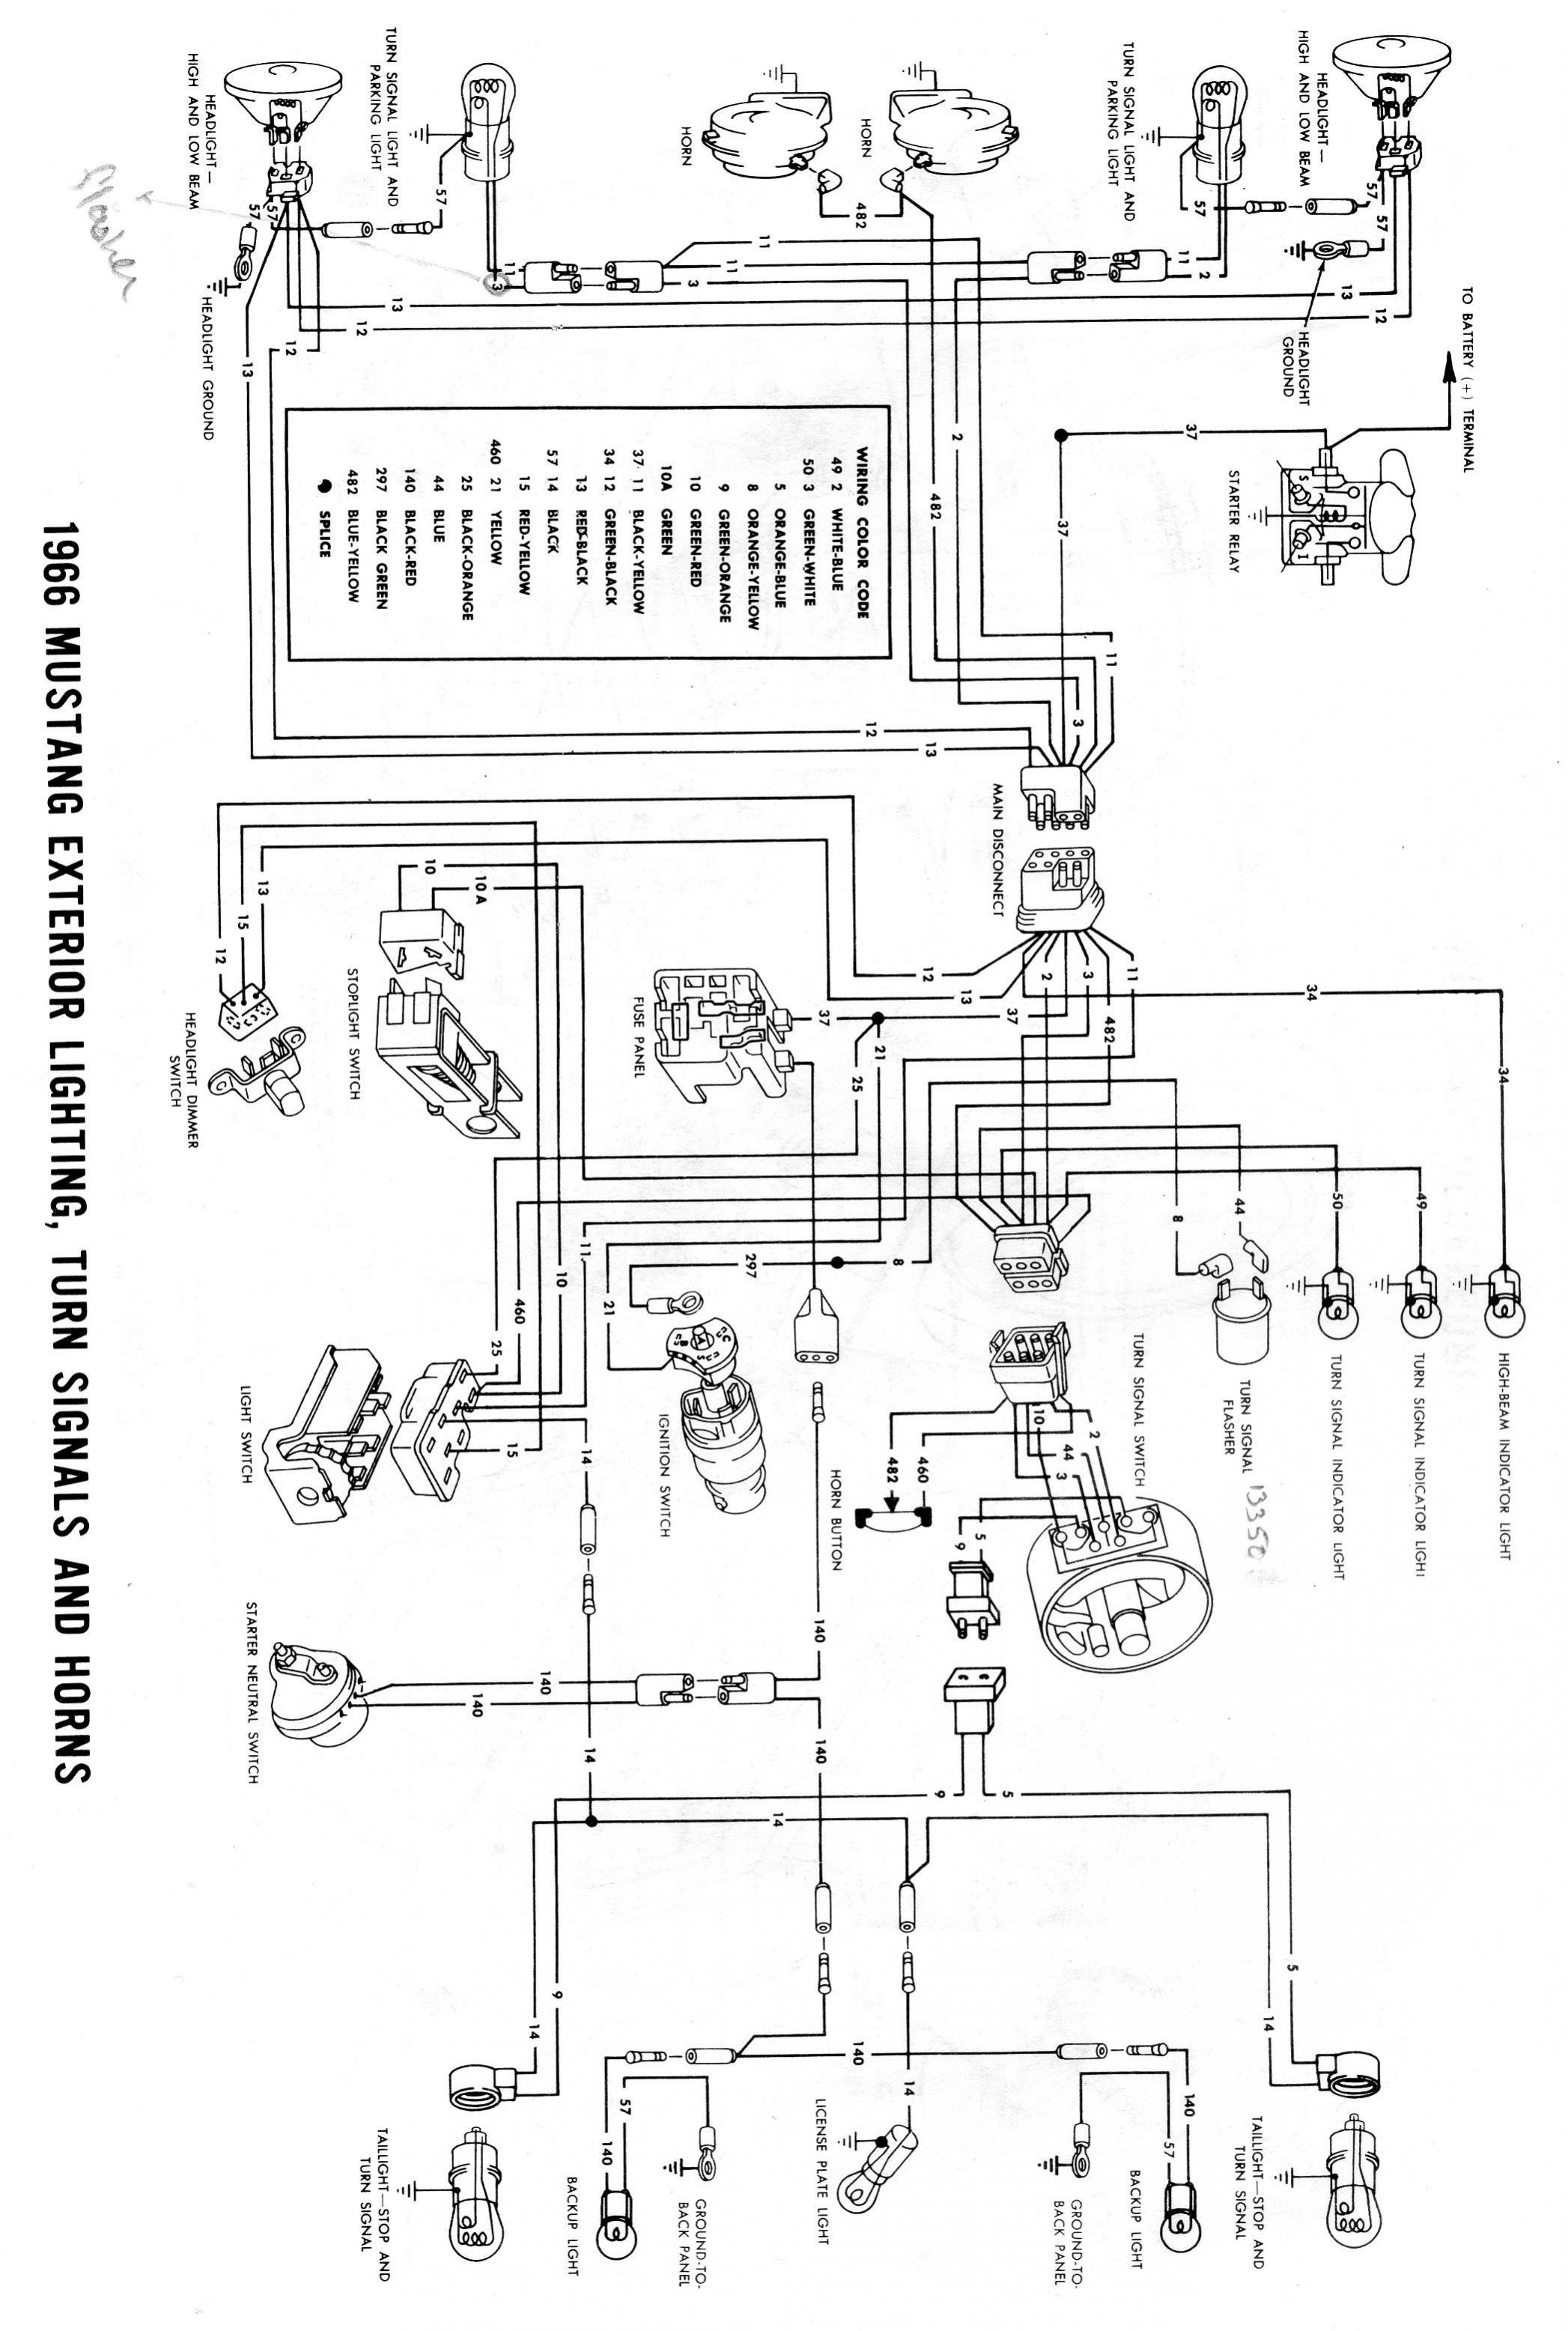 1984 ford wiring diagram online circuit wiring diagram u2022 rh electrobuddha co uk wiring diagram for 1984 ford bronco ii 1984 ford bronco 2 wiring diagram